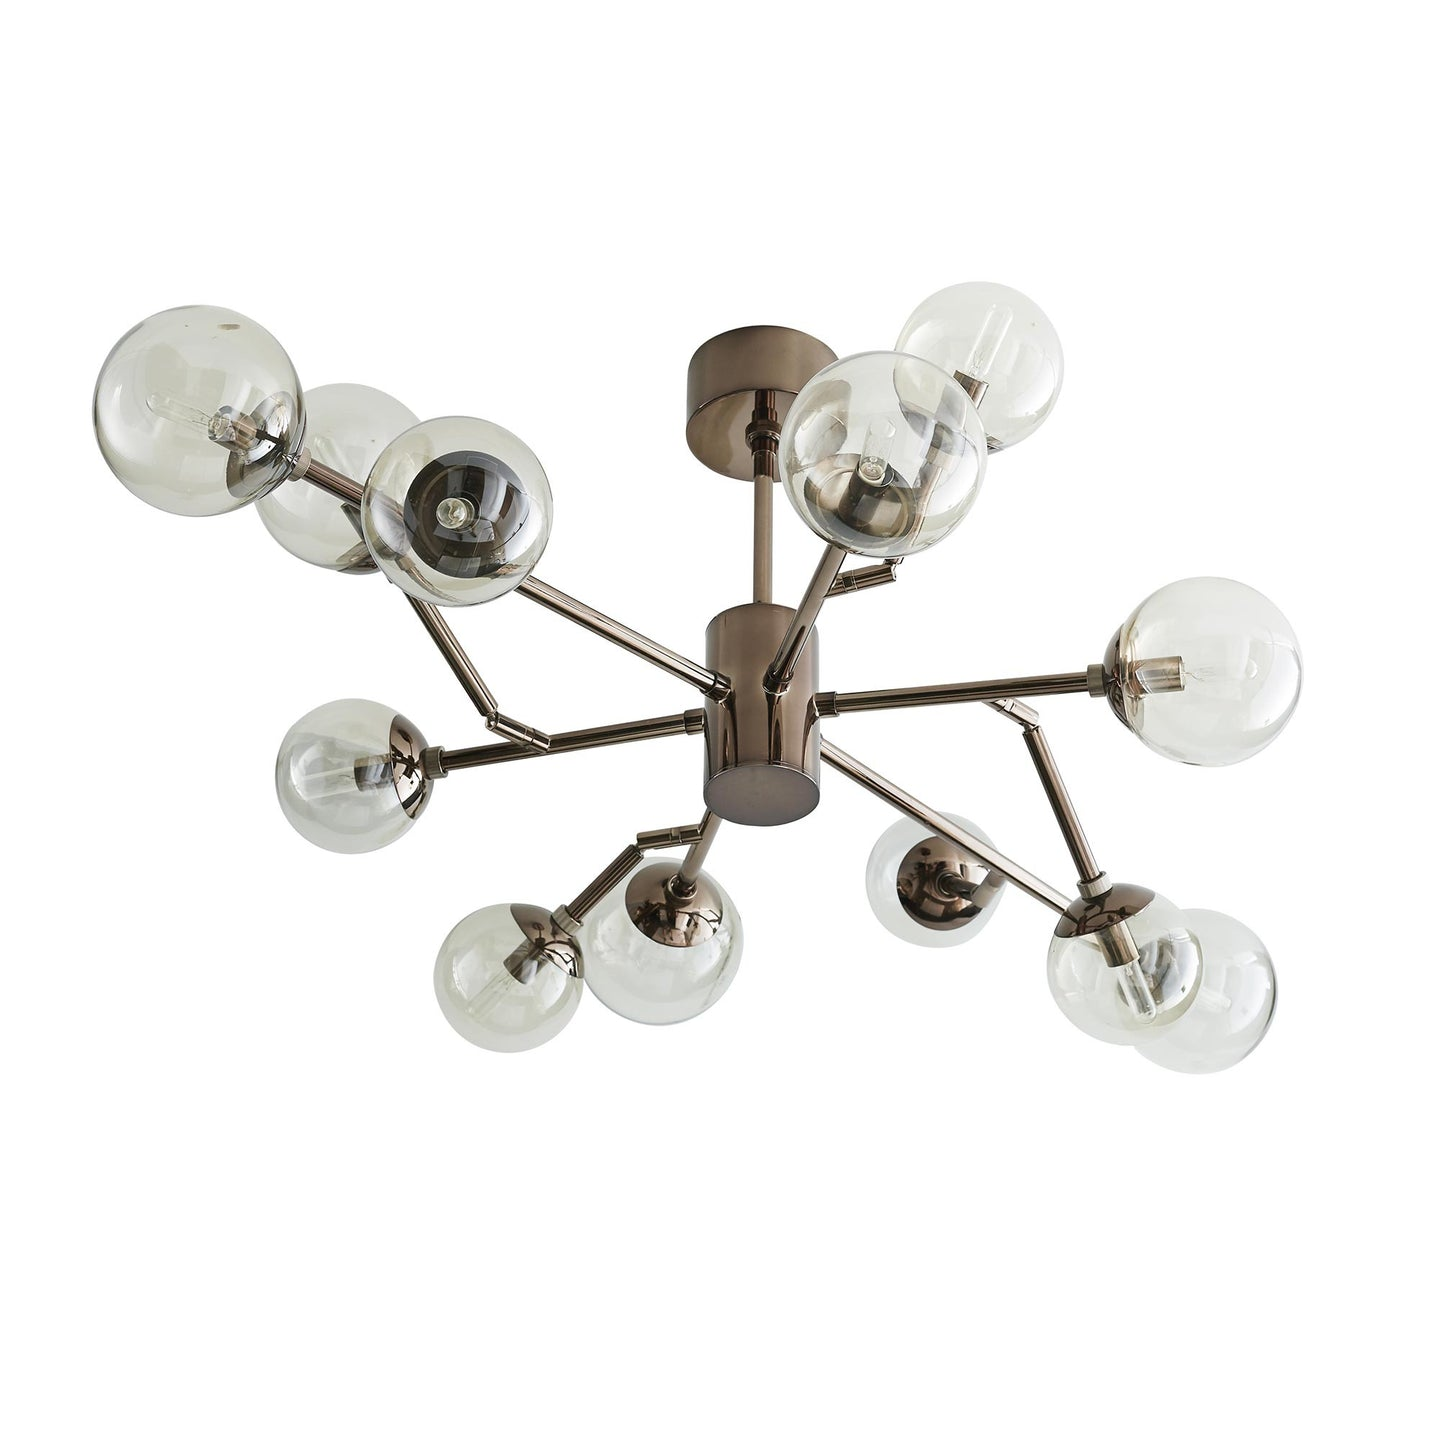 Arteriors Home Dallas Small Chandelier Brown Nickel – CLAYTON GRAY